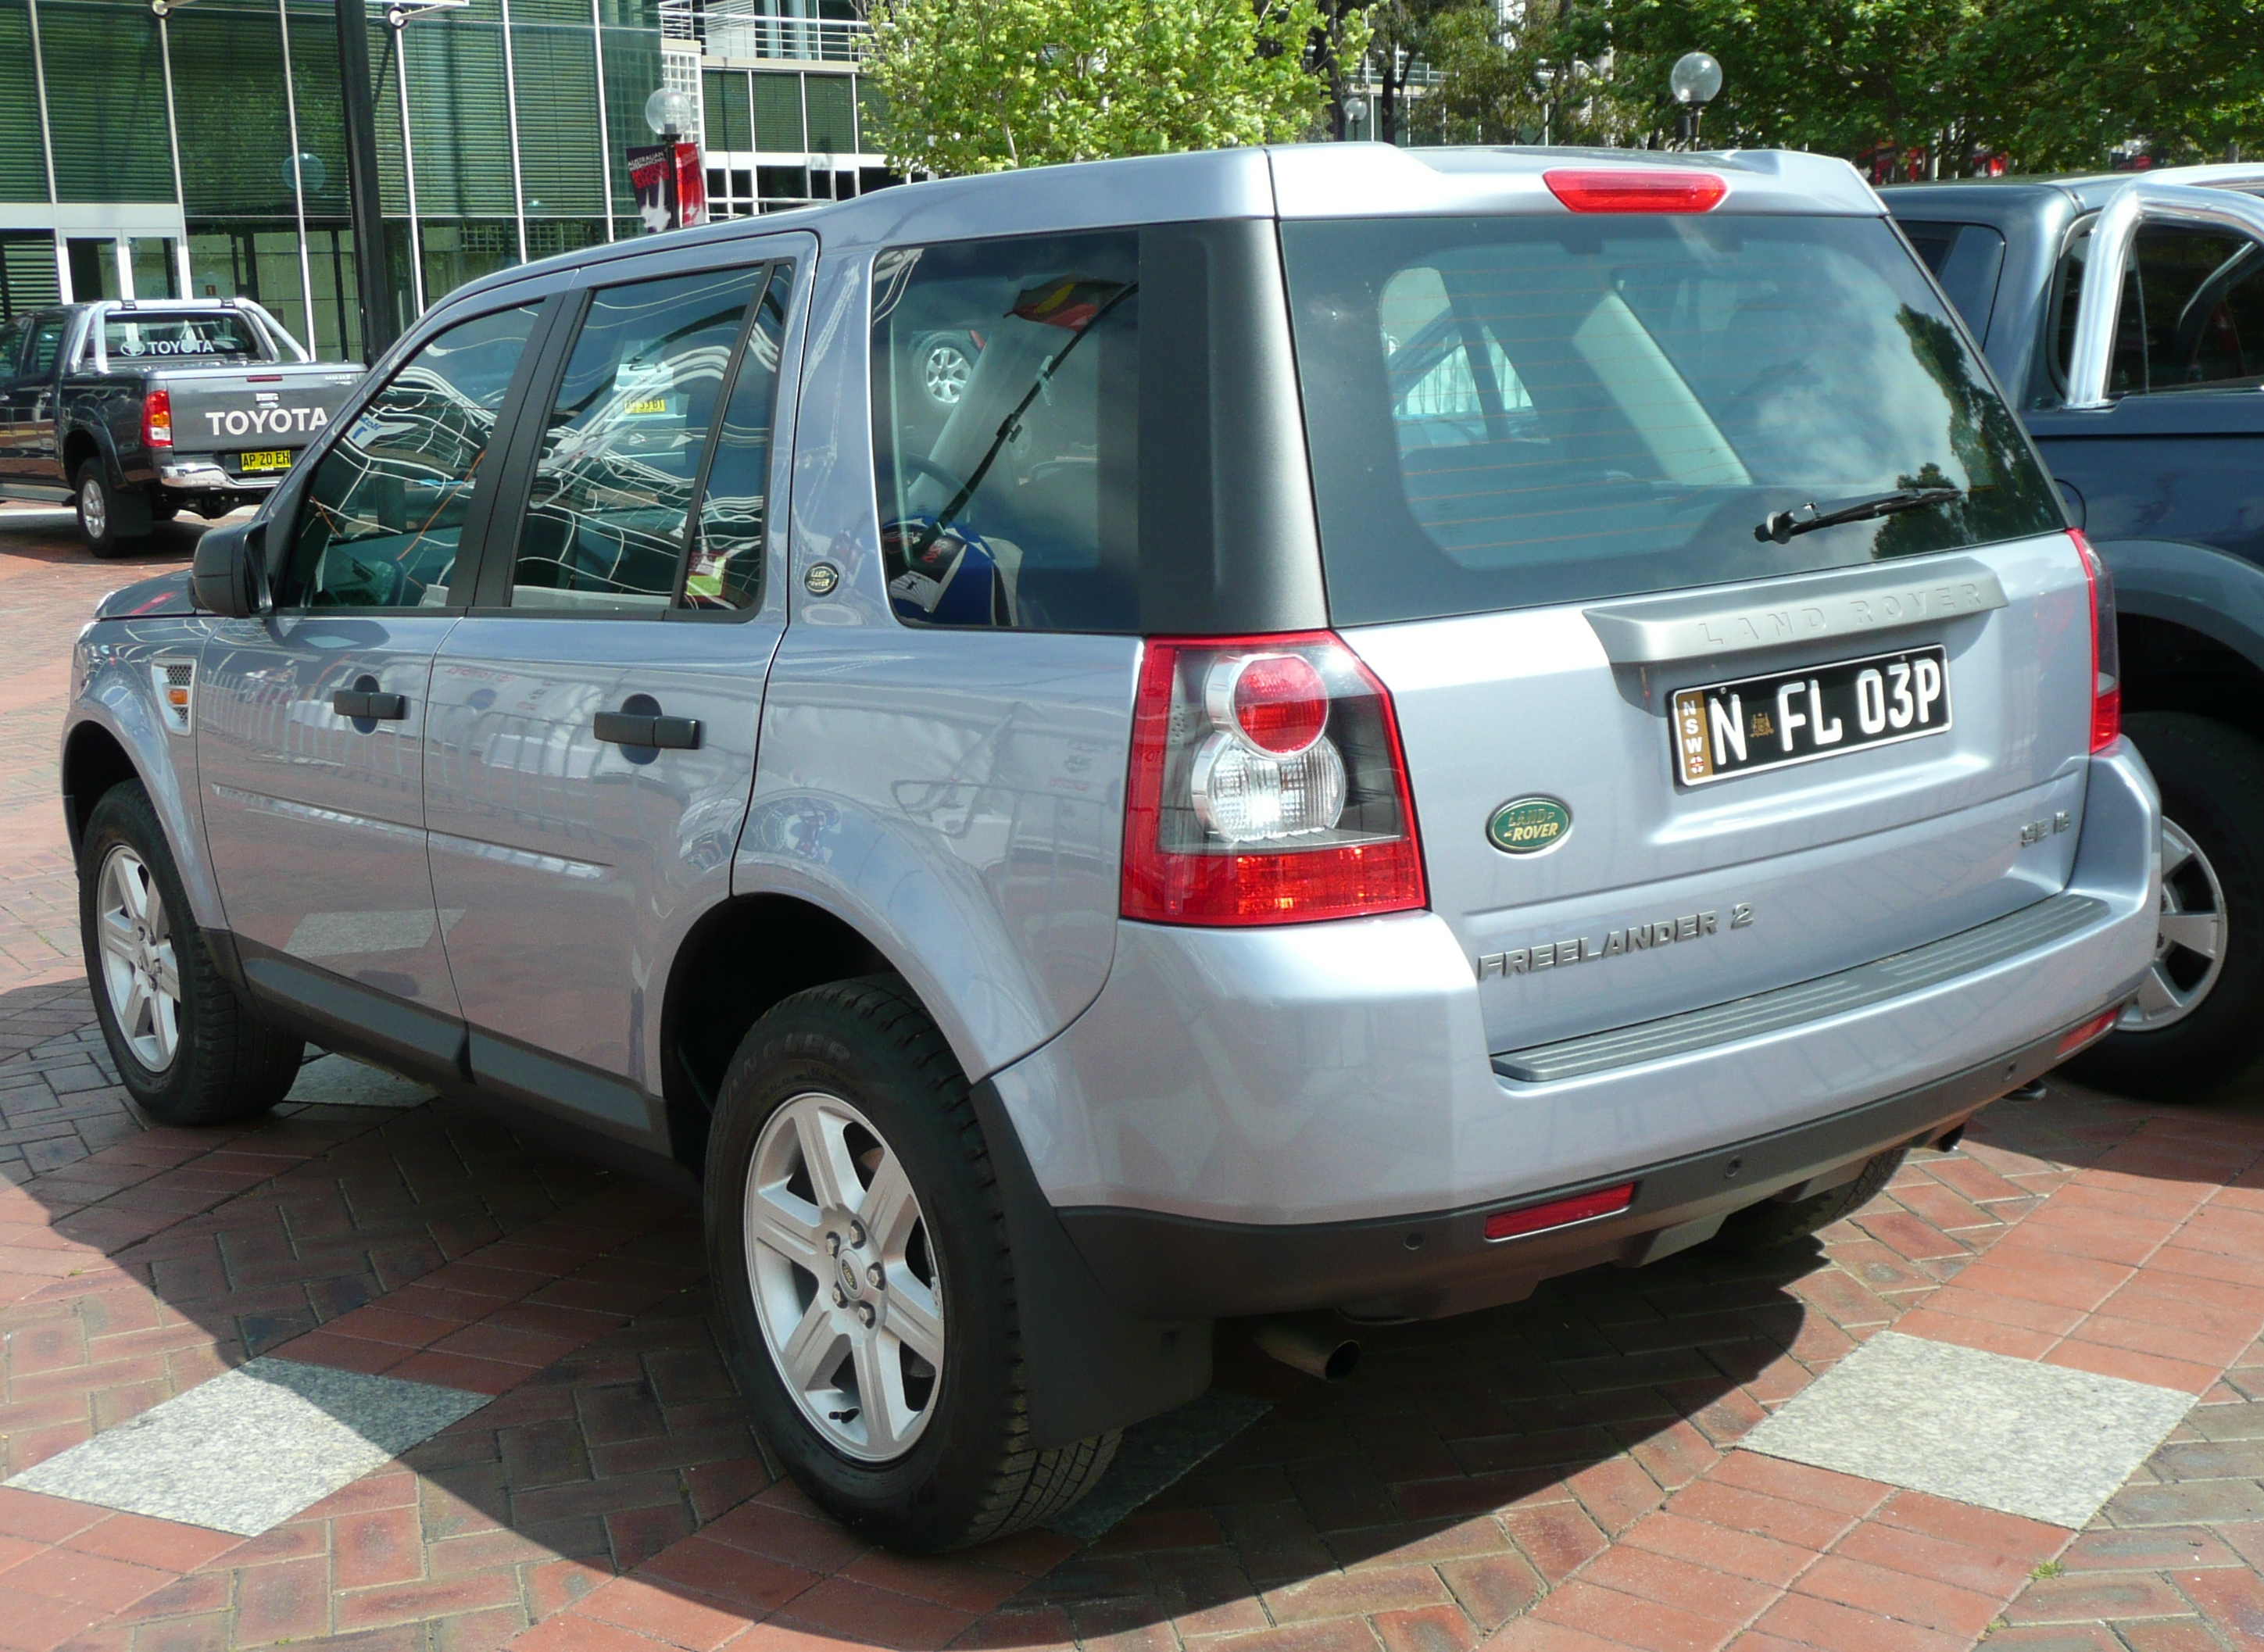 file 2007 land rover freelander 2 lf se i6 wagon wikimedia commons. Black Bedroom Furniture Sets. Home Design Ideas